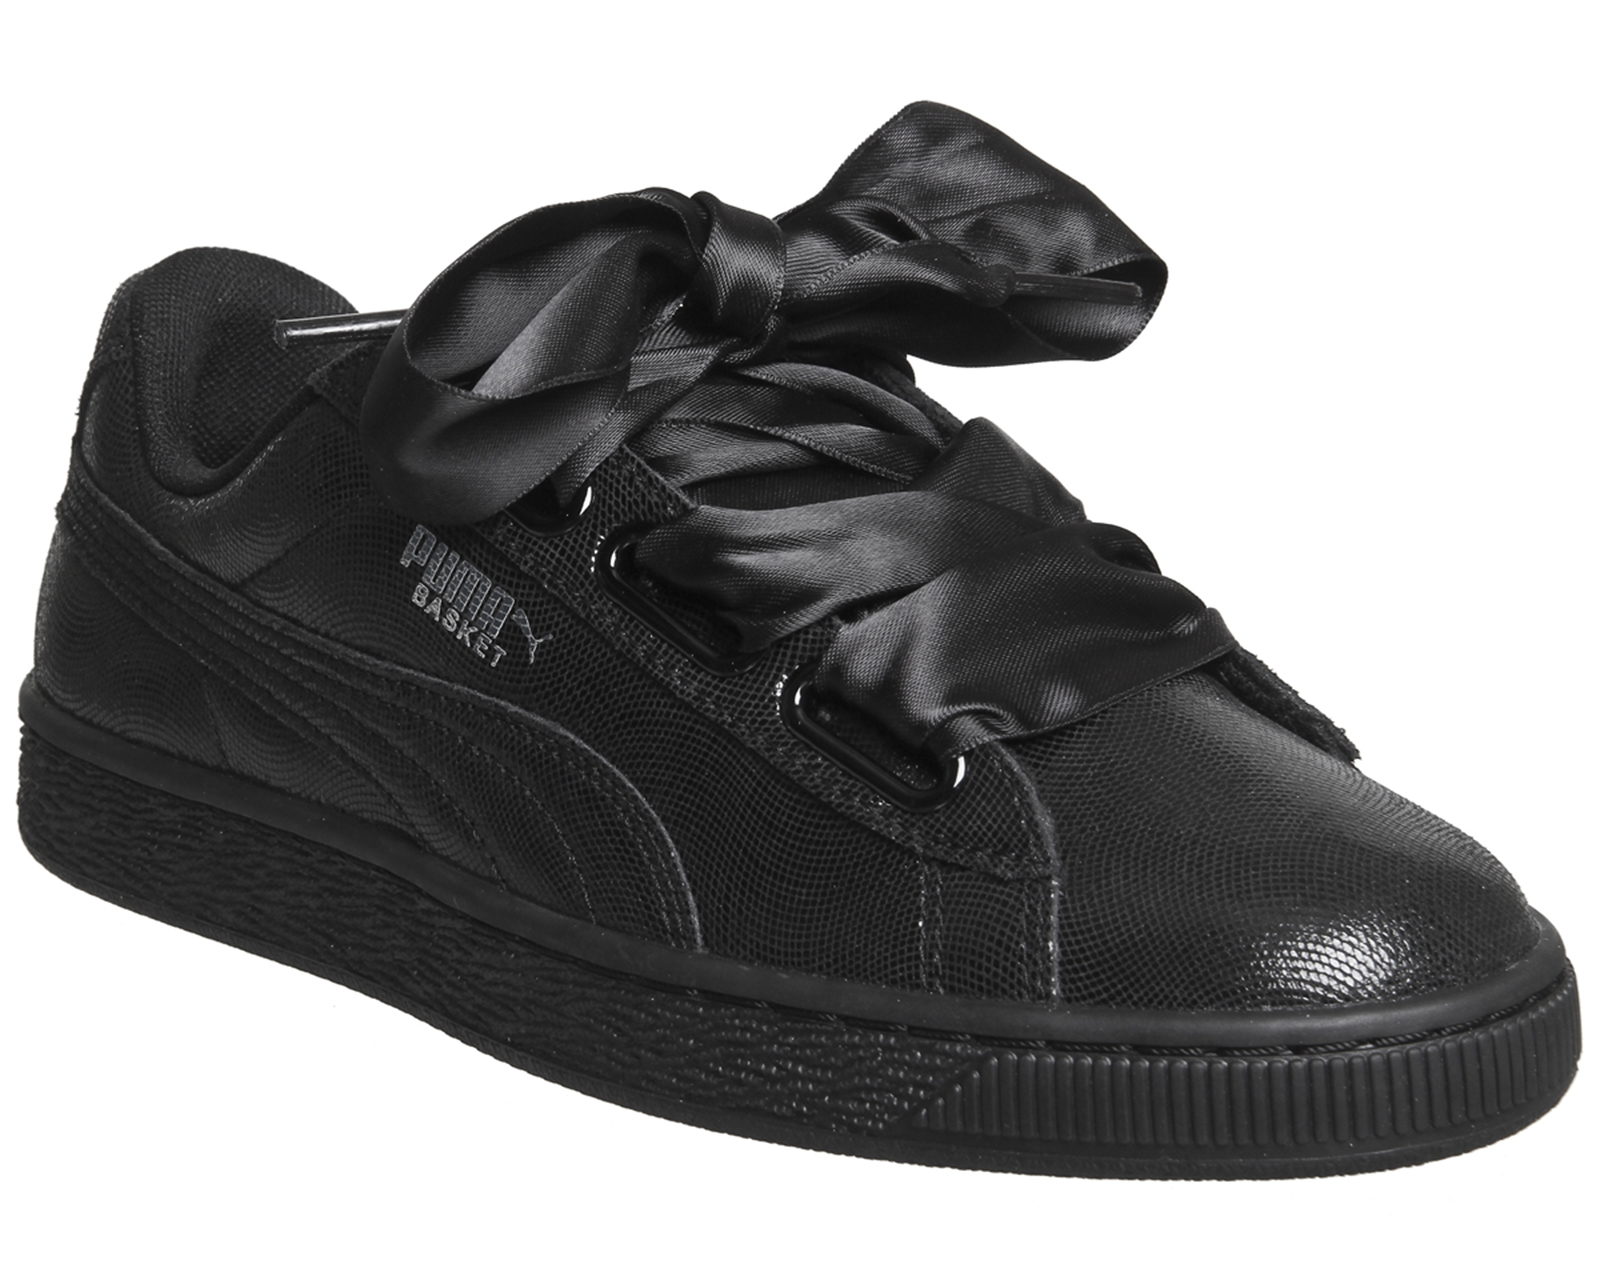 8b31f4f8227 Sentinel Womens Puma Basket Heart Trainers Puma Black Shine Trainers Shoes